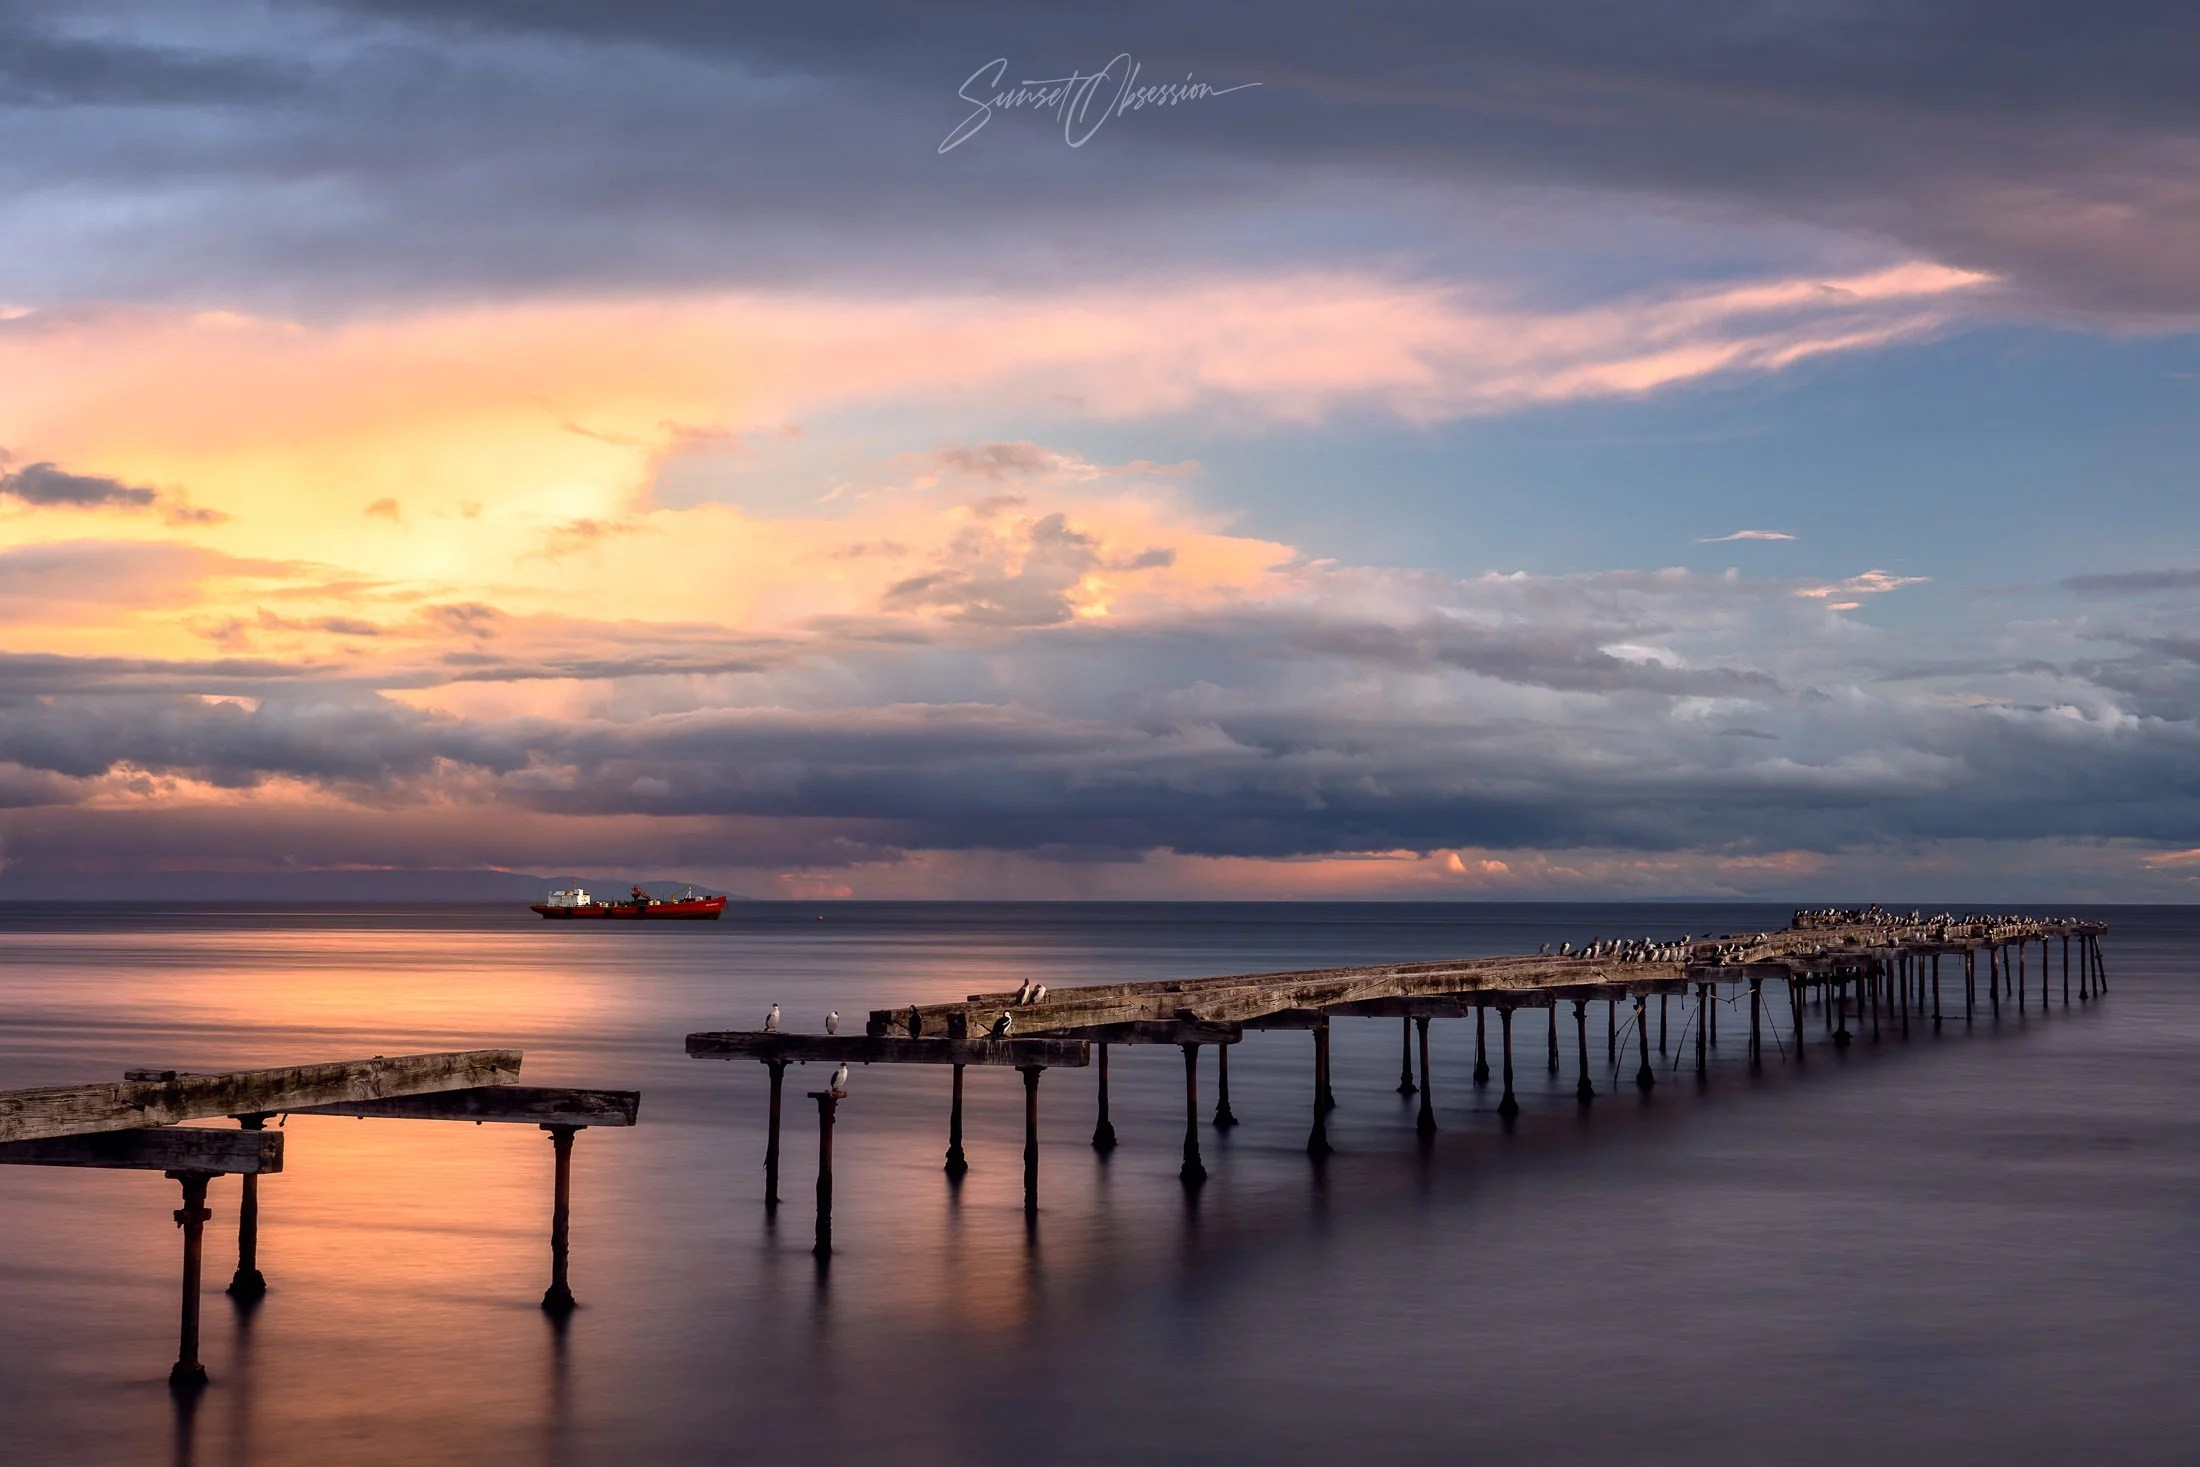 The old piers in Punta Arenas are a great photo location